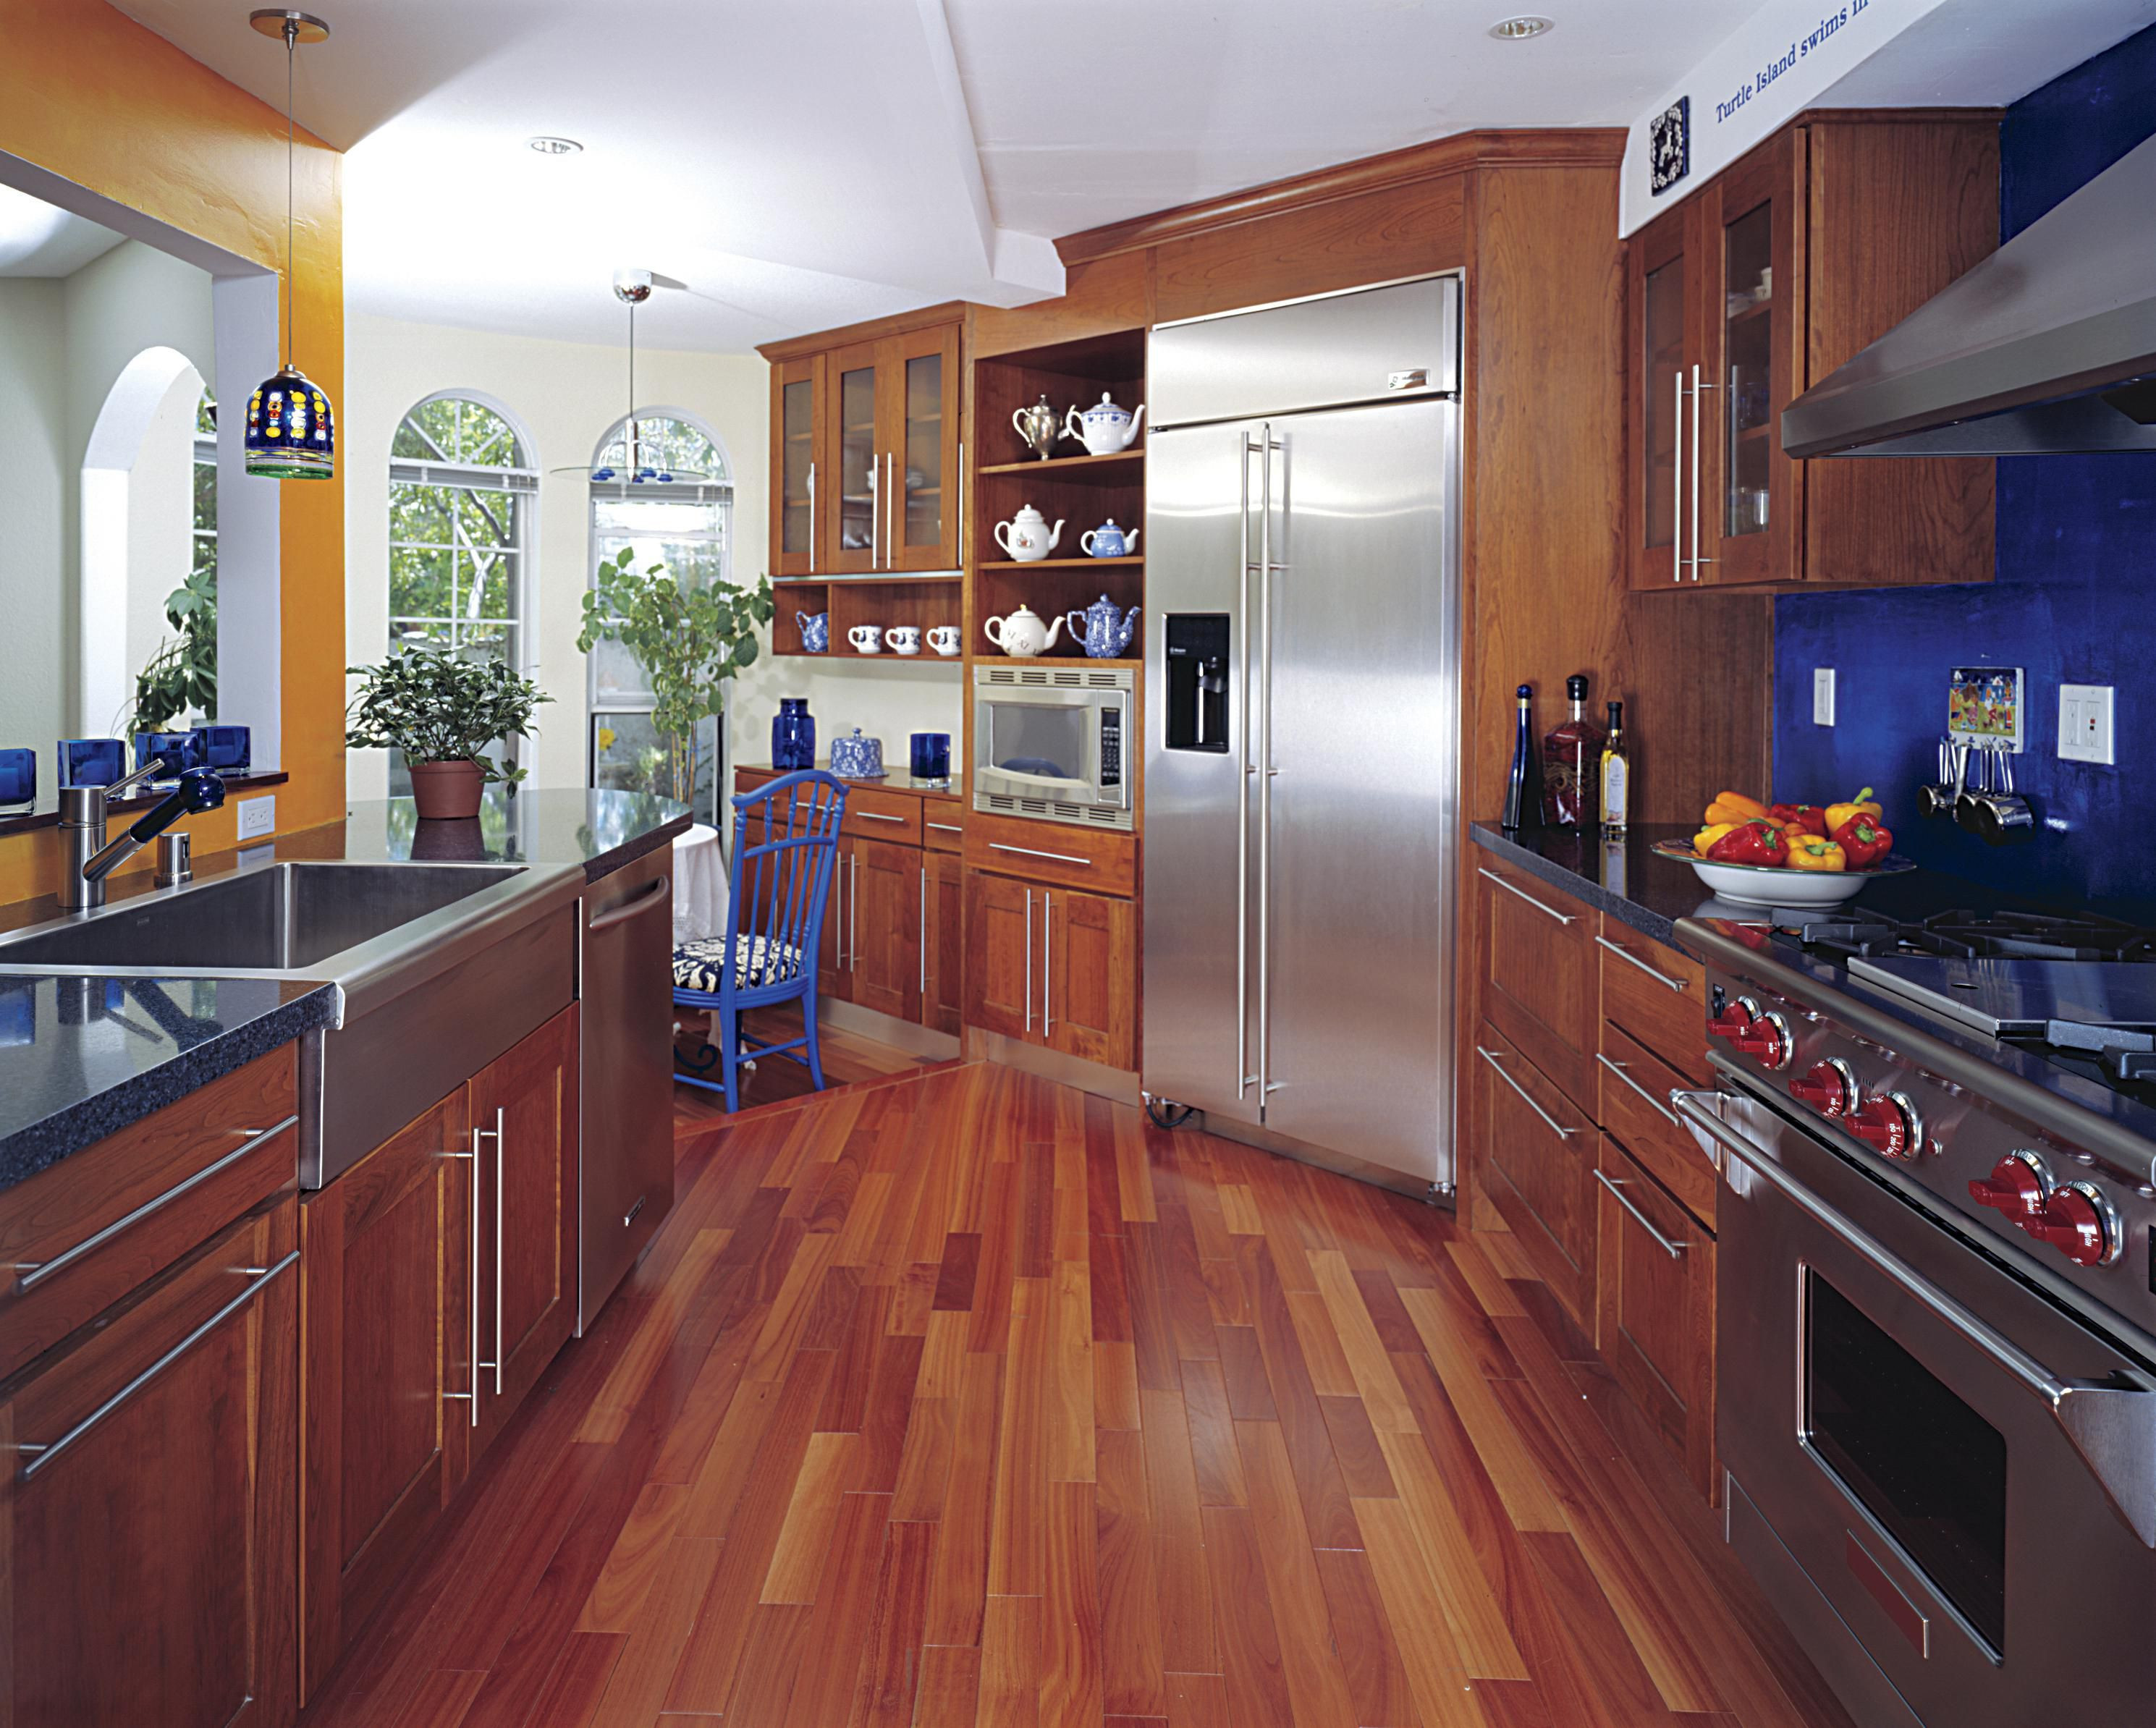 red oak unfinished hardwood flooring for sale of hardwood floor in a kitchen is this allowed for 186828472 56a49f3a5f9b58b7d0d7e142